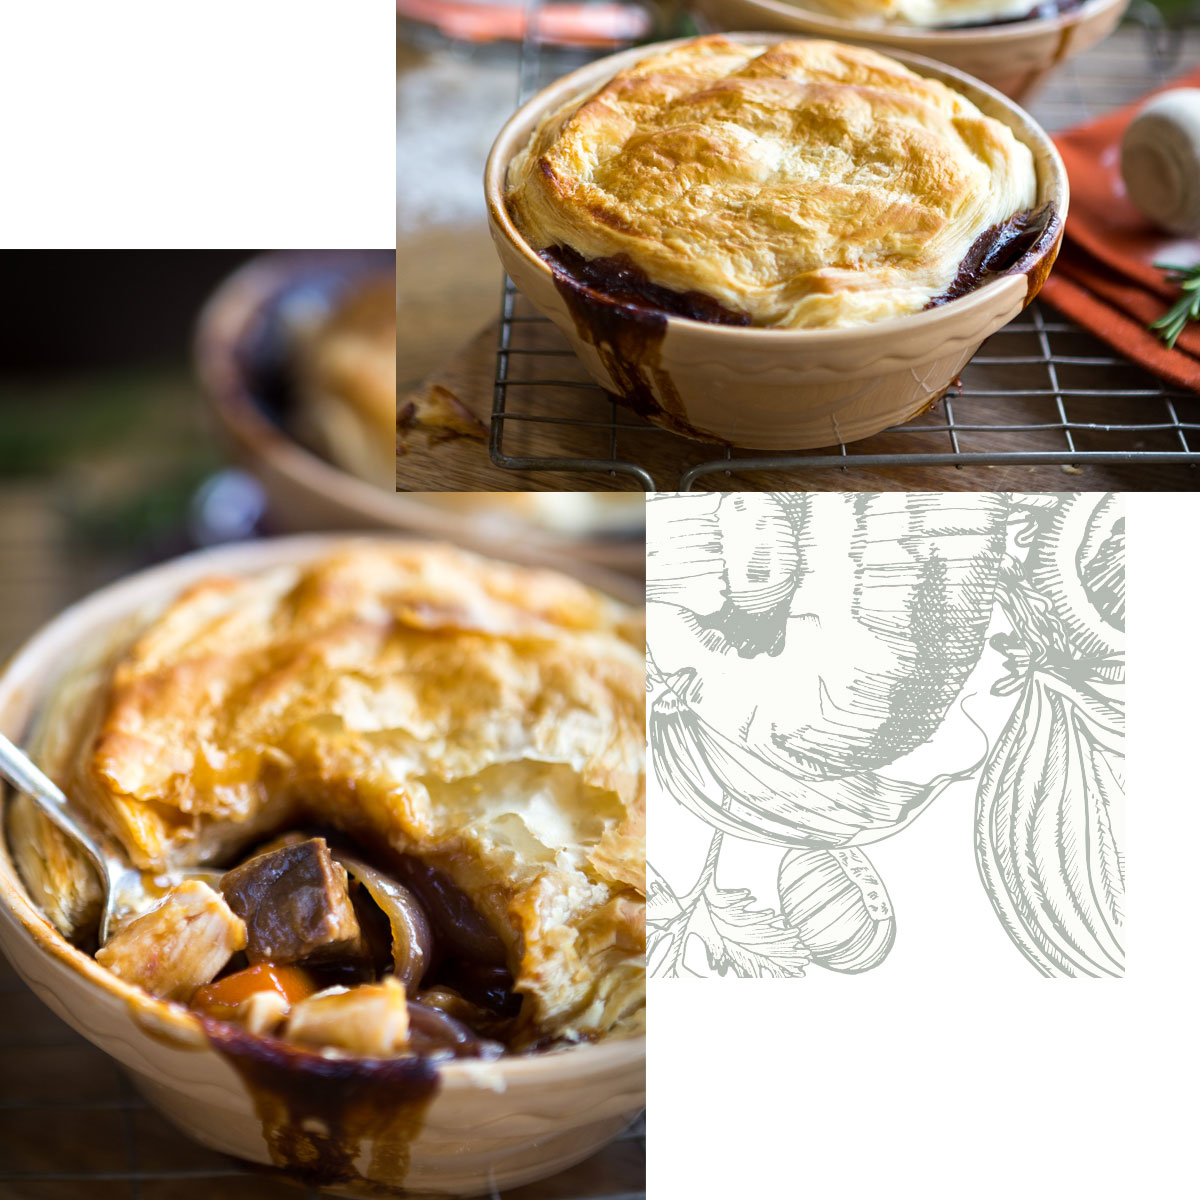 Chef & Brewer - Slow cooked game pie